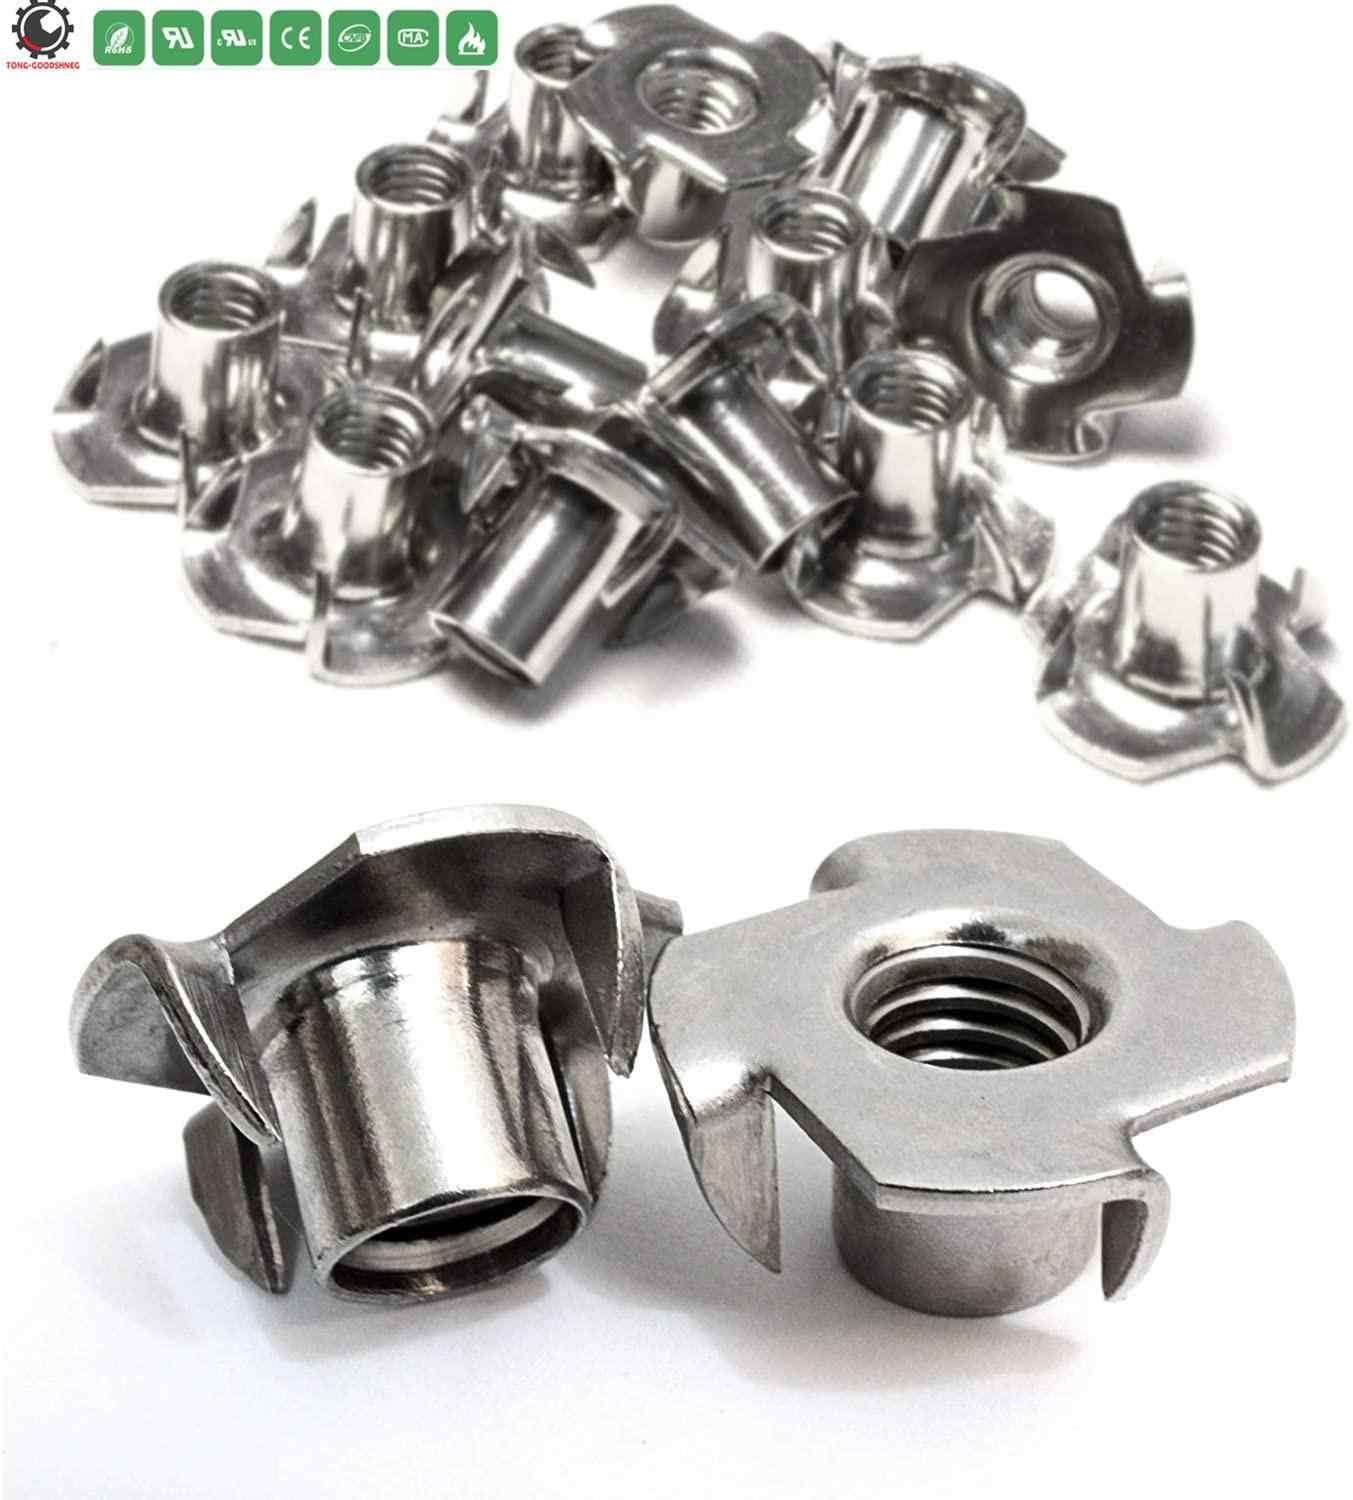 80pcs T Nuts Carbon Steel Four-Pronged Tee Nuts M3//4//5//6//8 Wood Tee Blind Nut T-Nut for Woodworking Furniture Cabinetry